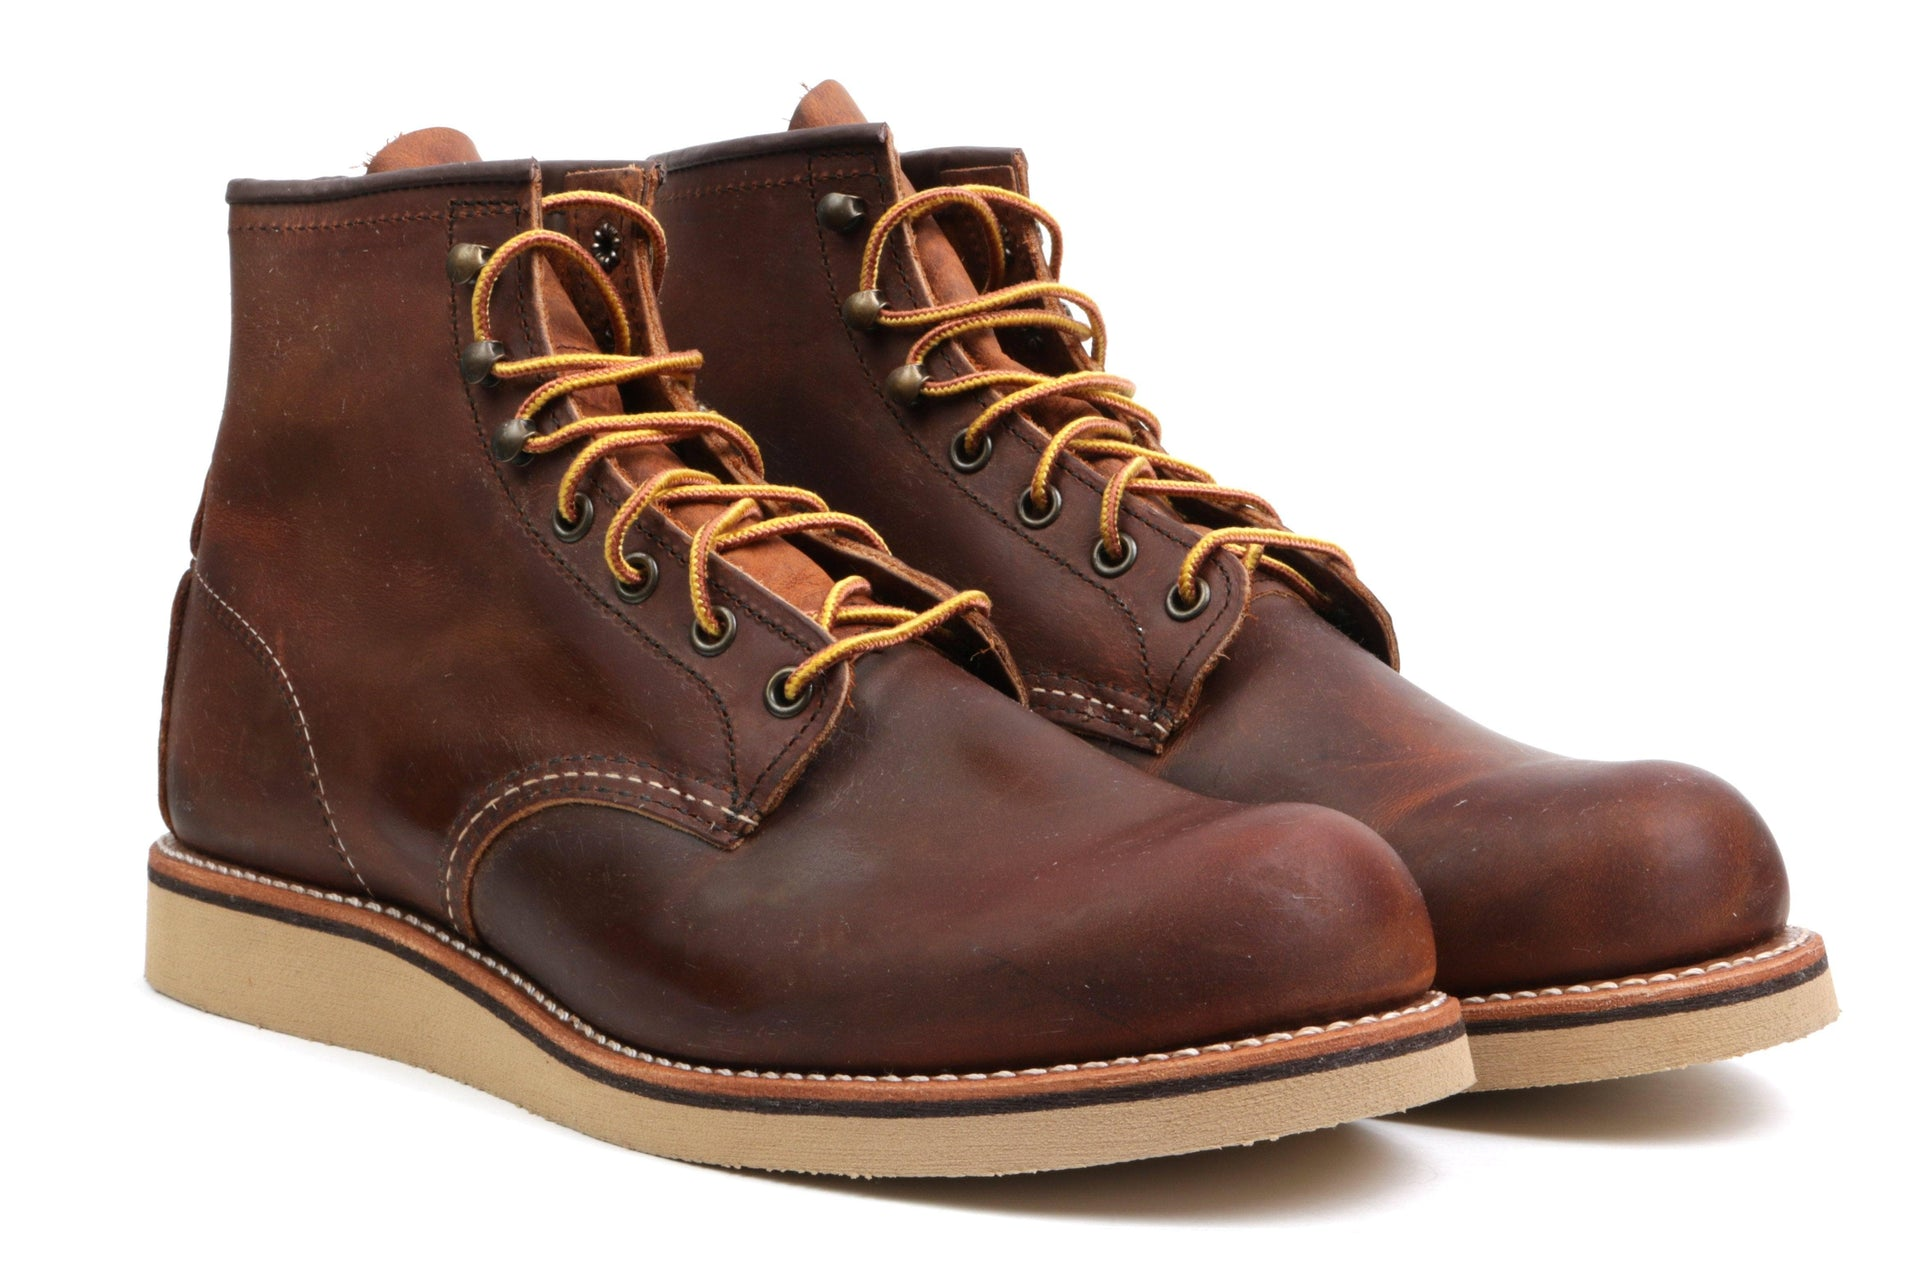 ROUGHNECK BOOT 02950-0 MENS FOOTWEAR RED WING SHOES